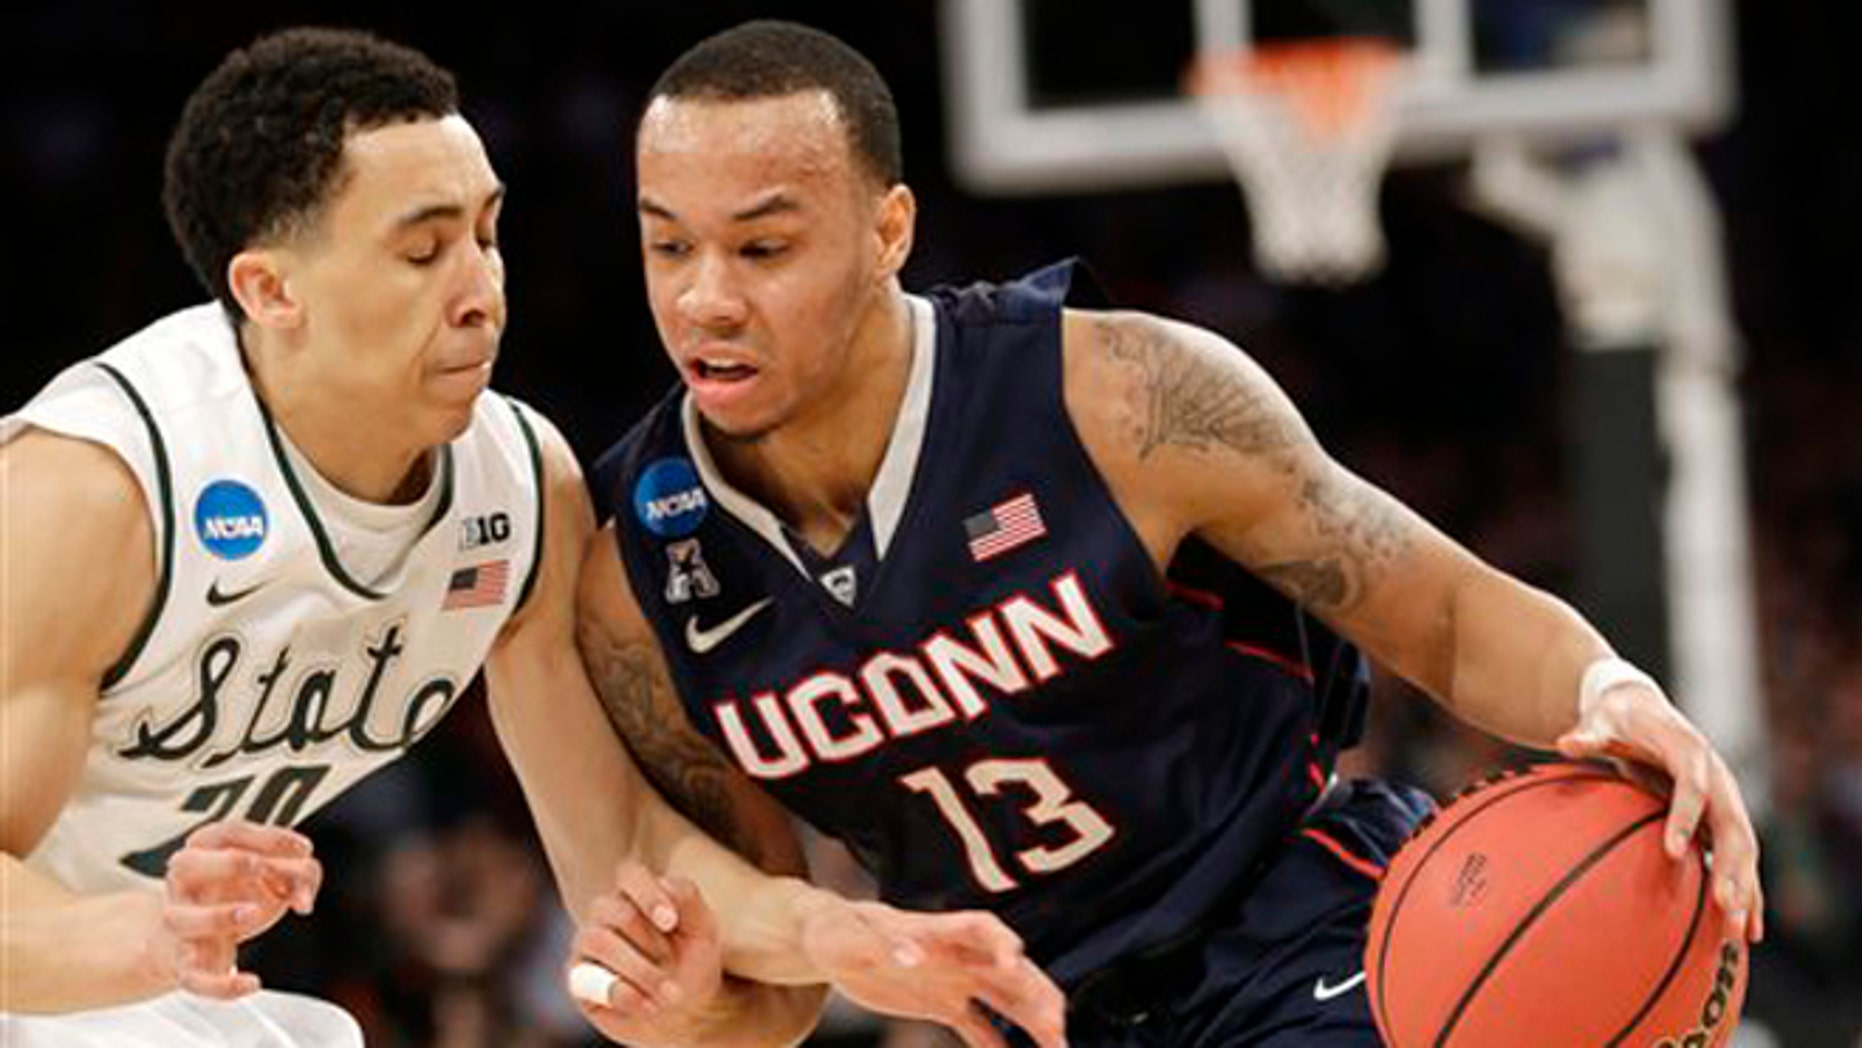 Connecticut's Shabazz Napier, right, moves the ball around Michigan State's Travis Trice in the first half of a regional final at the NCAA college basketball tournament on Sunday, March 30, 2014, in New York. (AP Photo/Seth Wenig)